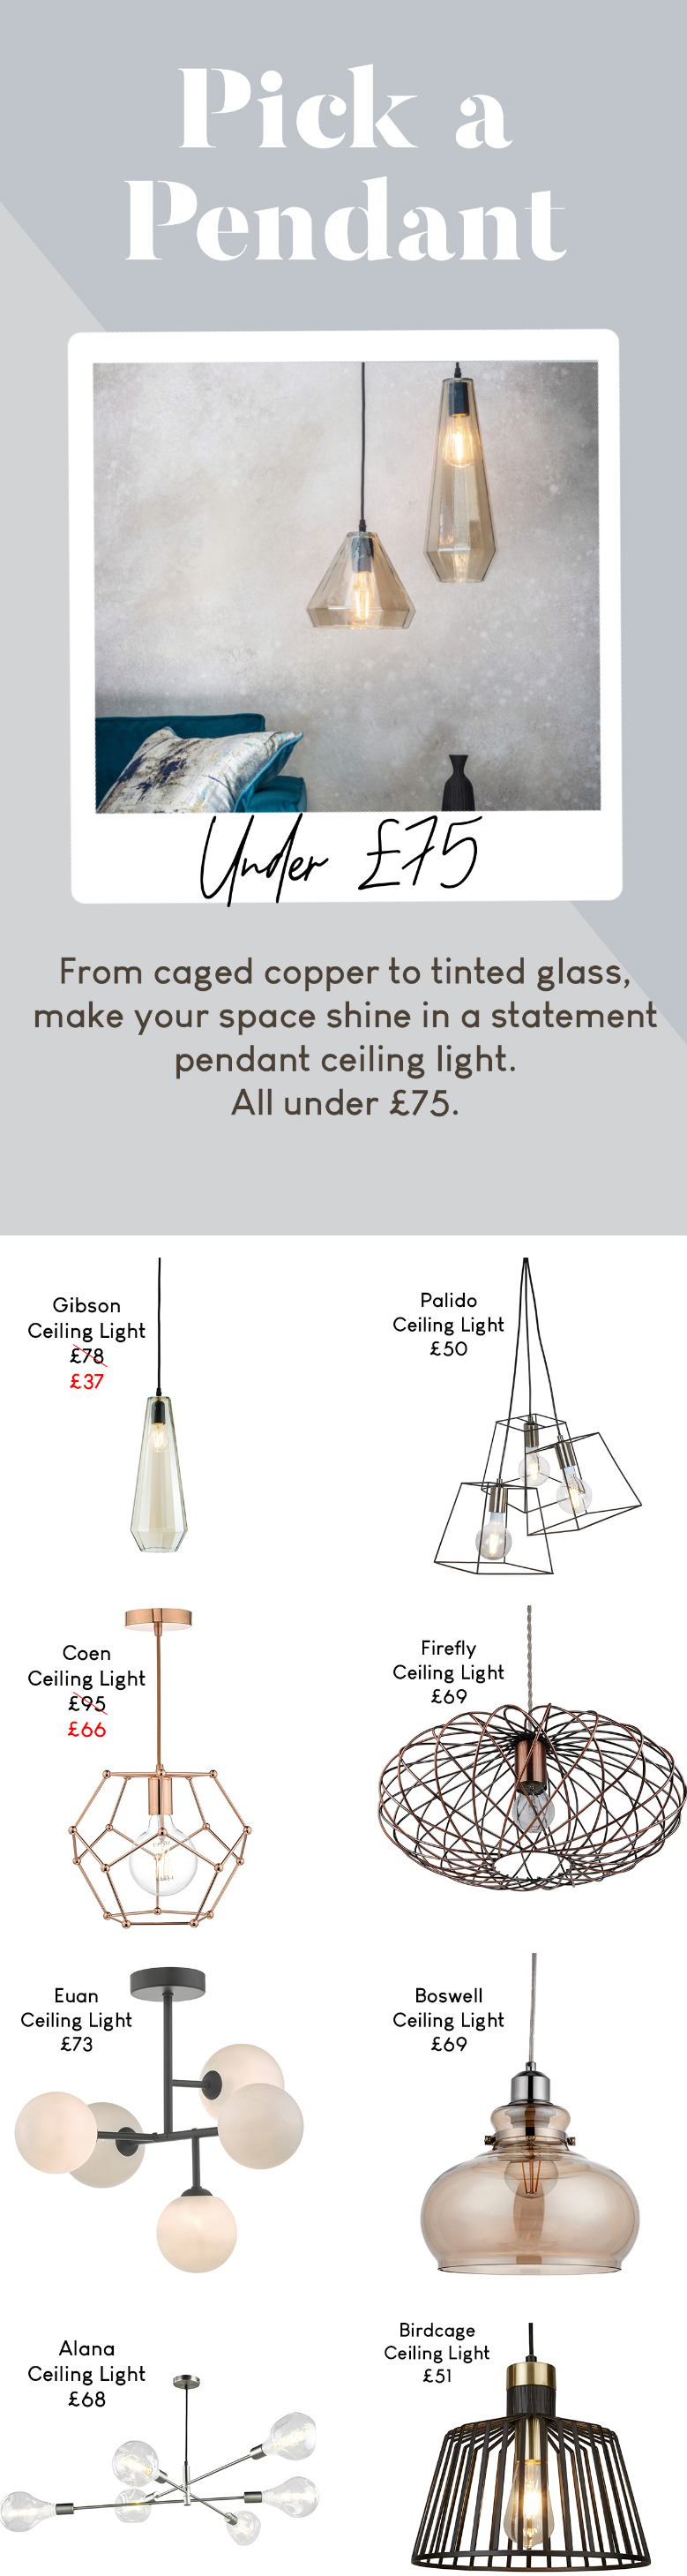 From caged copper to tinted glass, make your space shine in a statement pendant ceiling light.